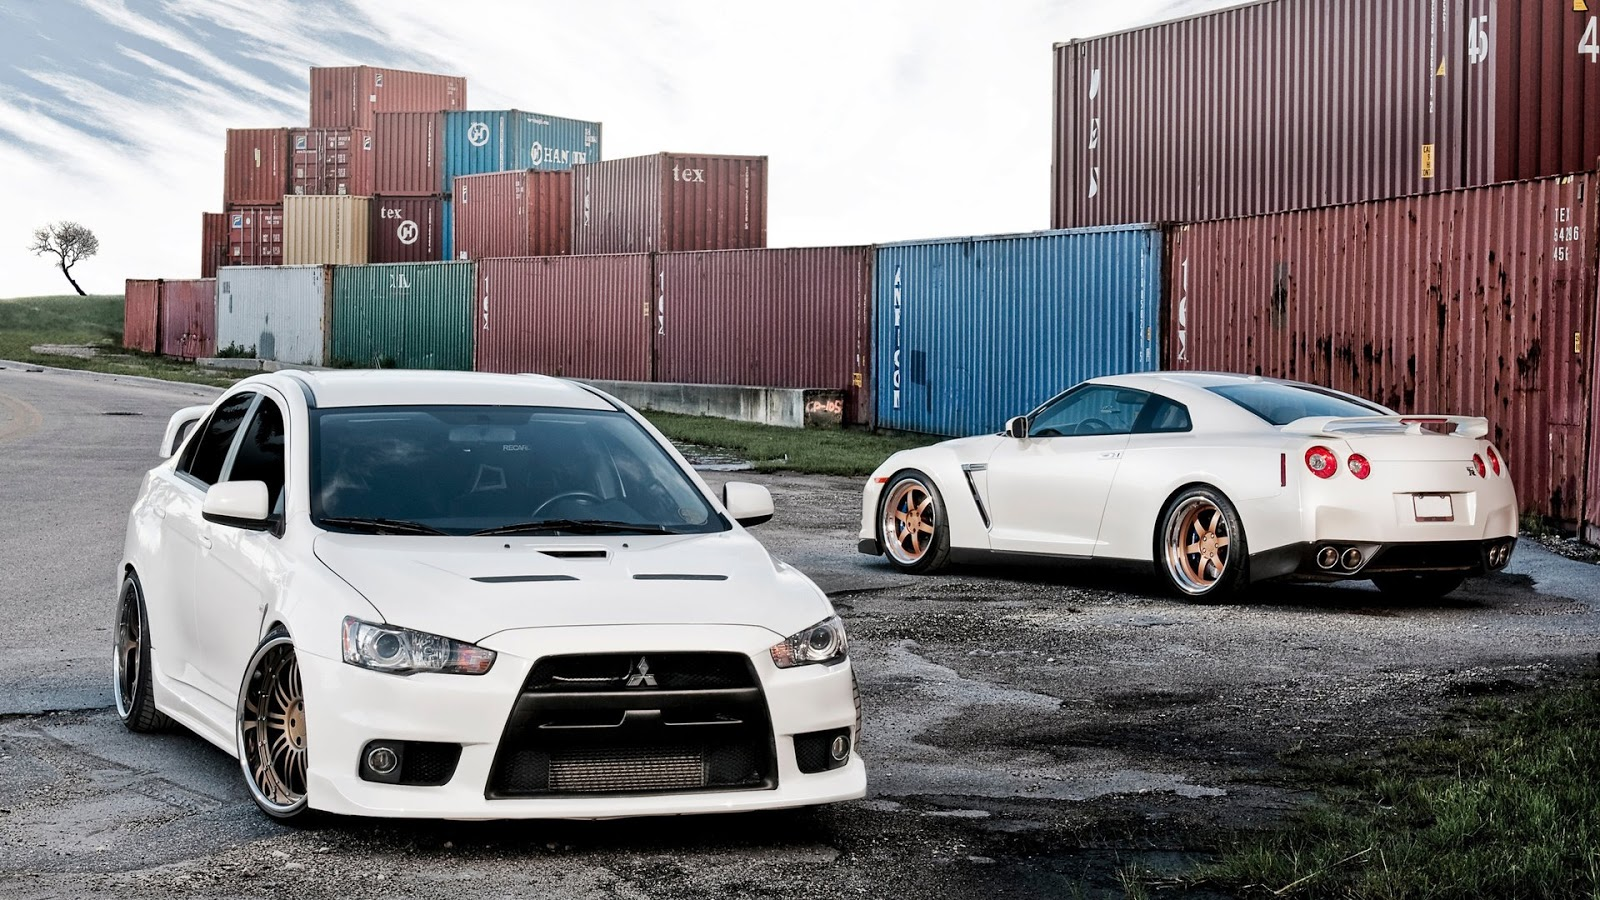 Mitsubishi Evo Wallpaper Backdrop Www Topsimages Com